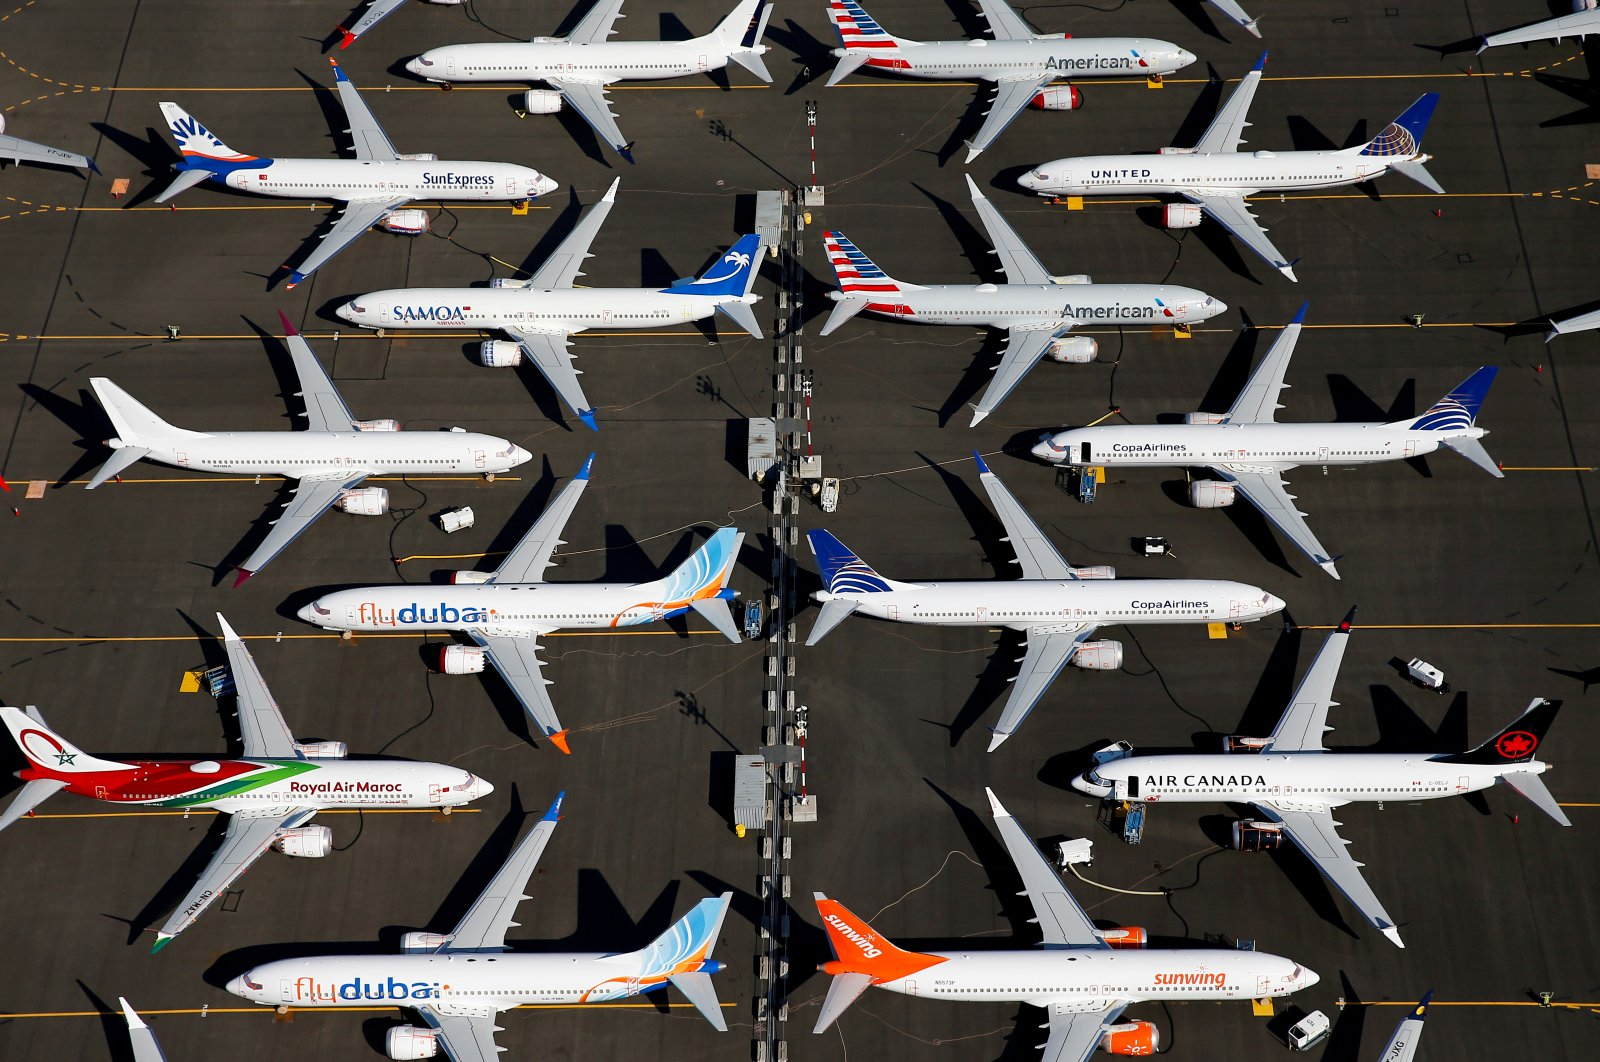 Grounded Boeing 737 MAX aircraft are seen parked in an aerial photo at Boeing Field in Seattle, Washington, U.S. July 1, 2019. (REUTERS Photo)